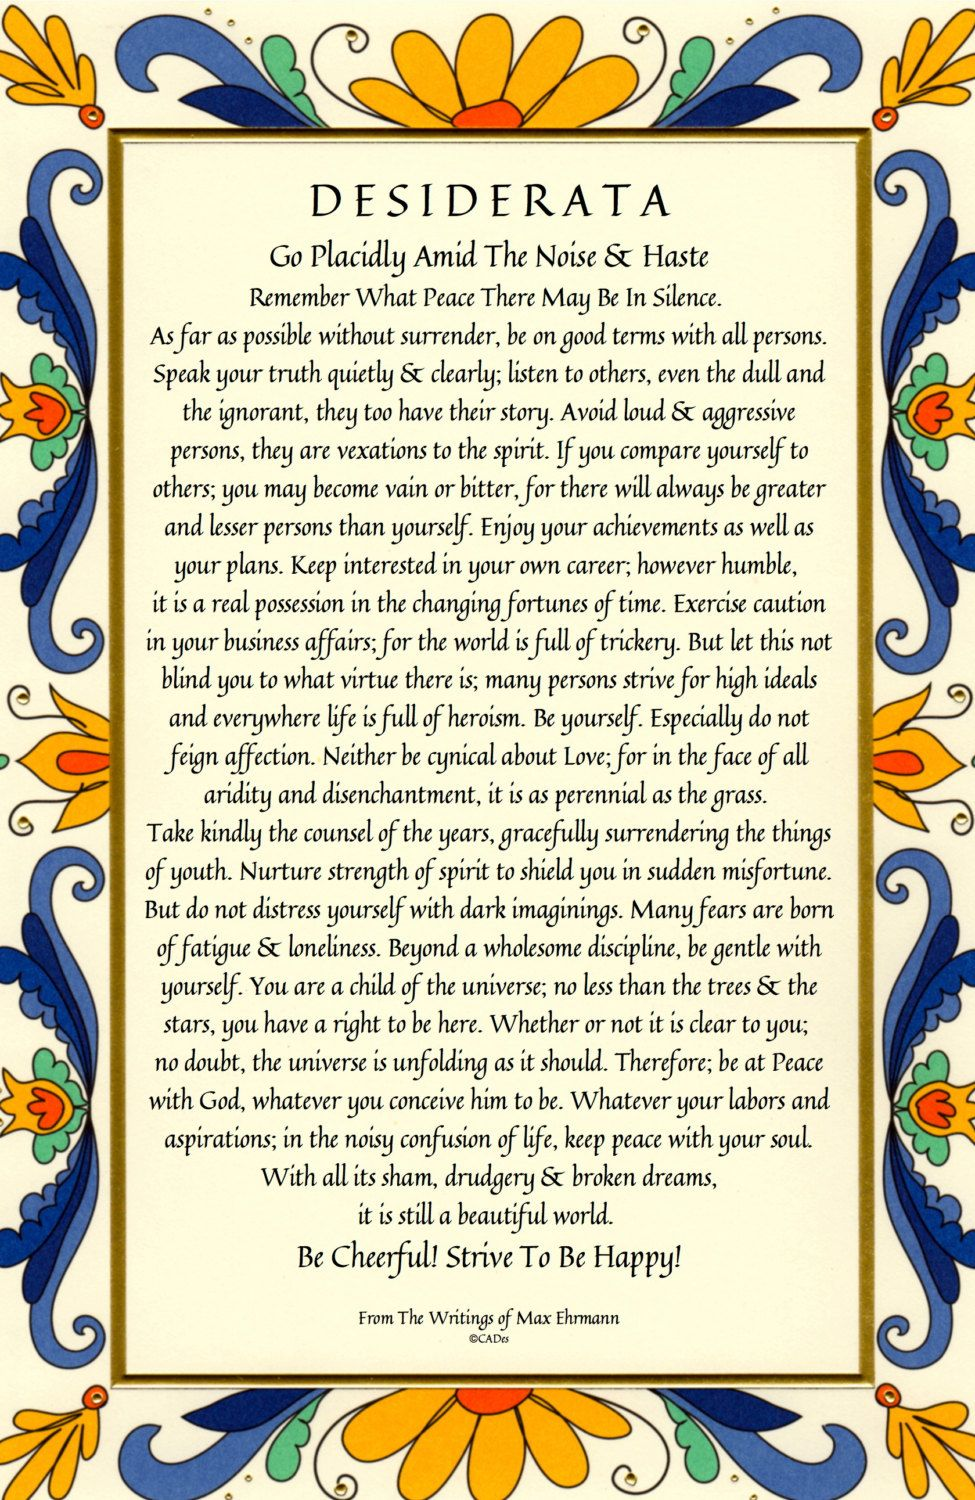 essay about desiderata poem Desiderata is also a title of a prose poem written by max ehrmann in 1927 the  poem provides an insight of a person's relationship with one's self, with another.